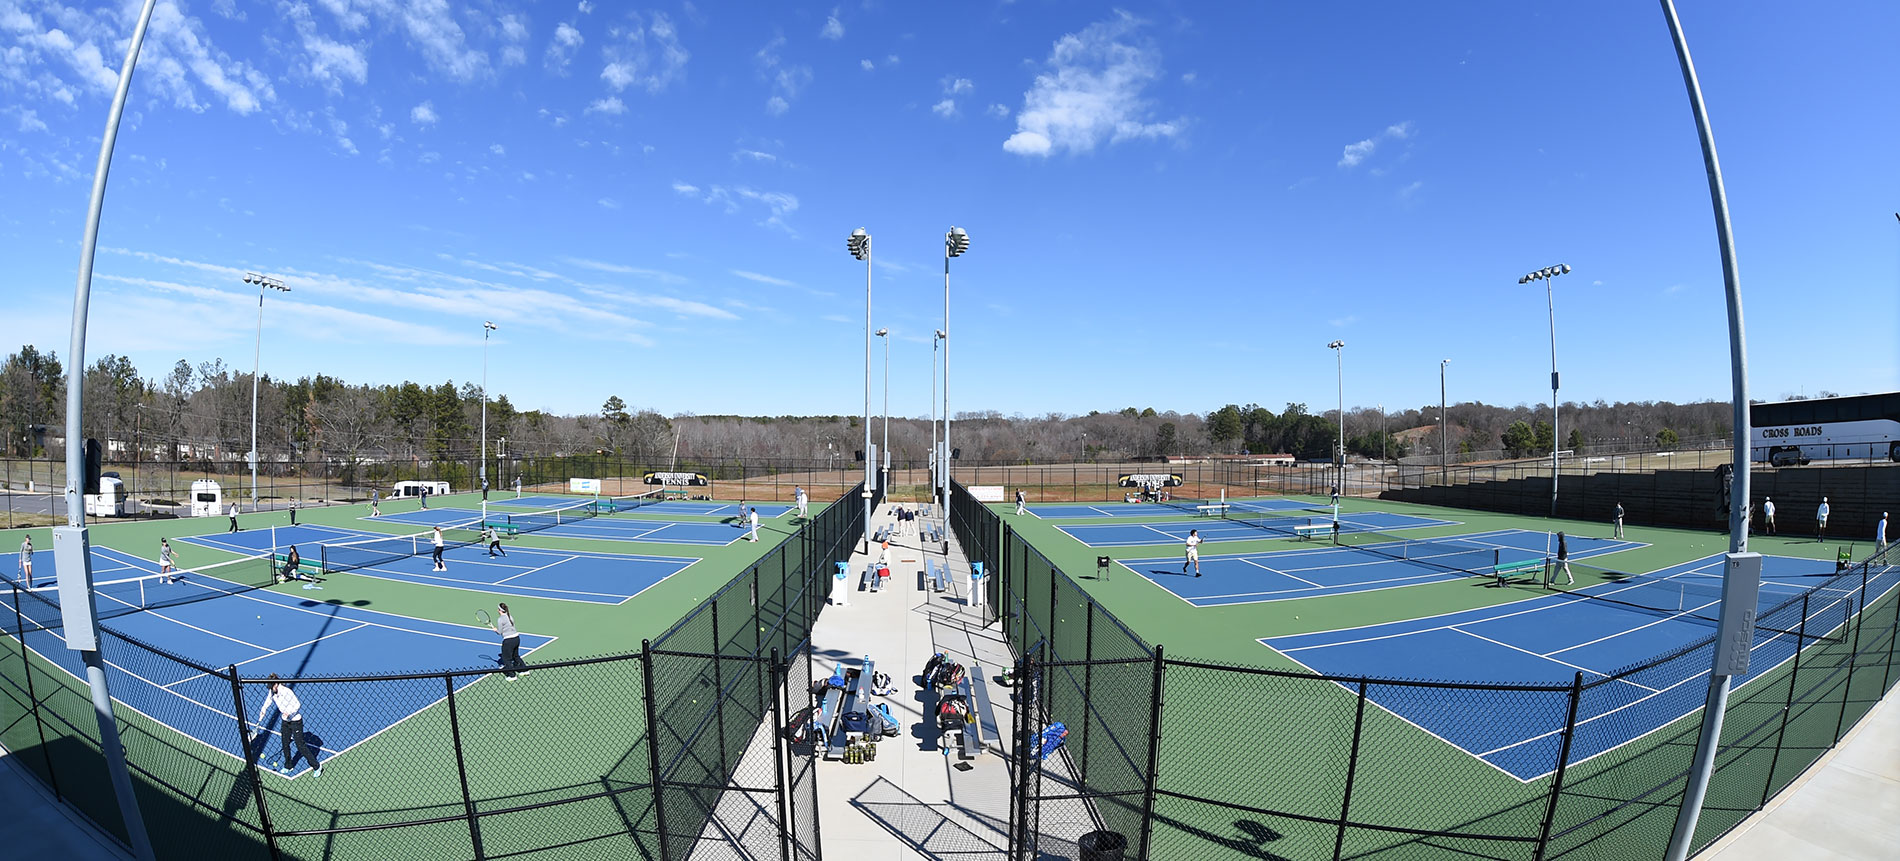 Men's and Women's Tennis 2018-19 Schedule Has Been Released